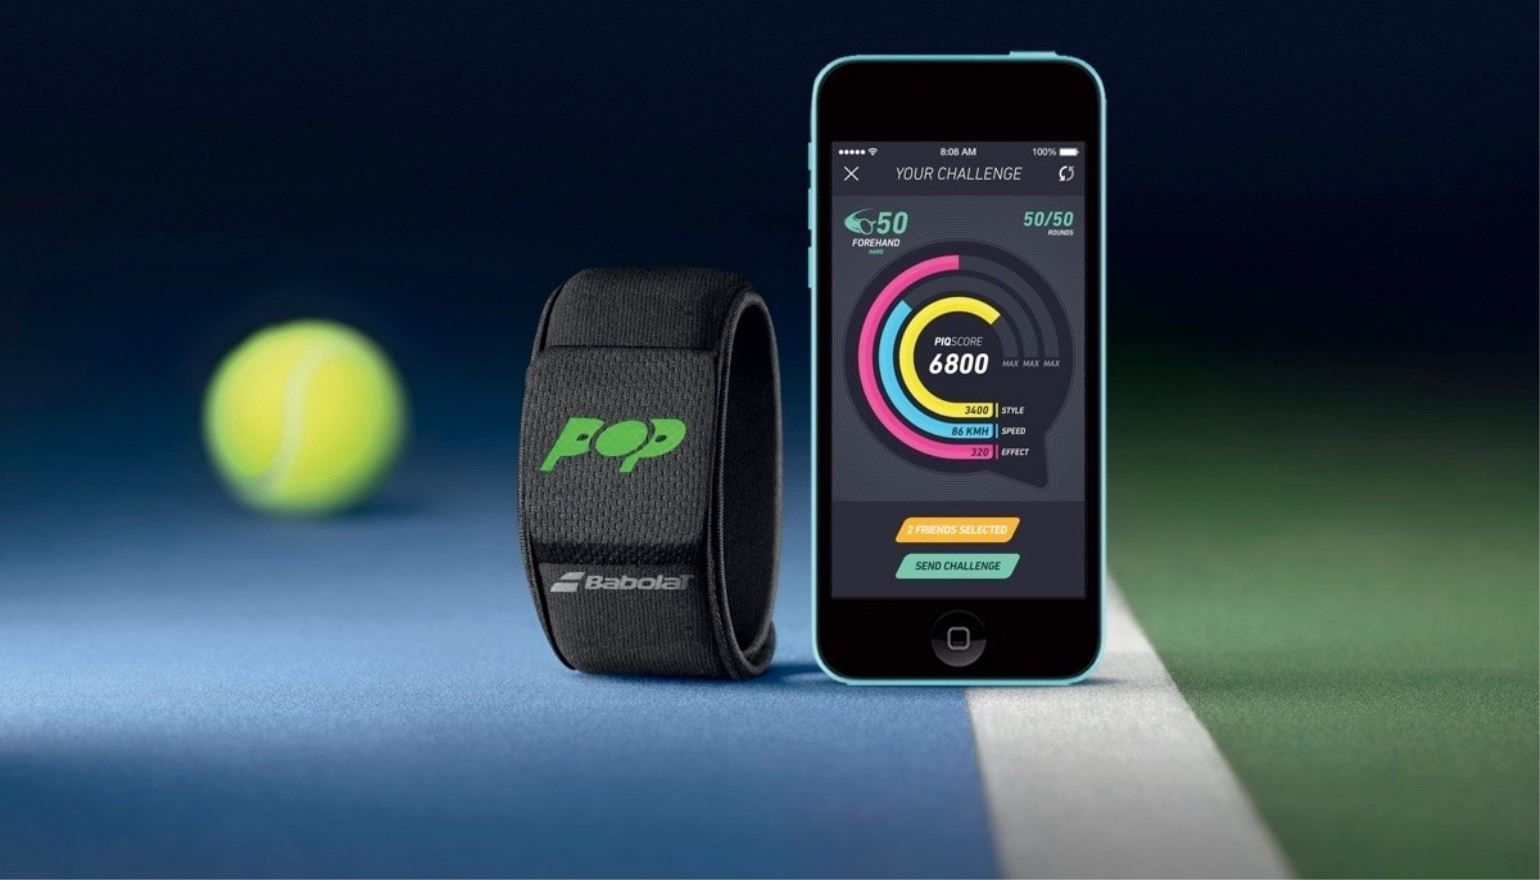 Babolat en PIQ introduceren Tennis-wearables